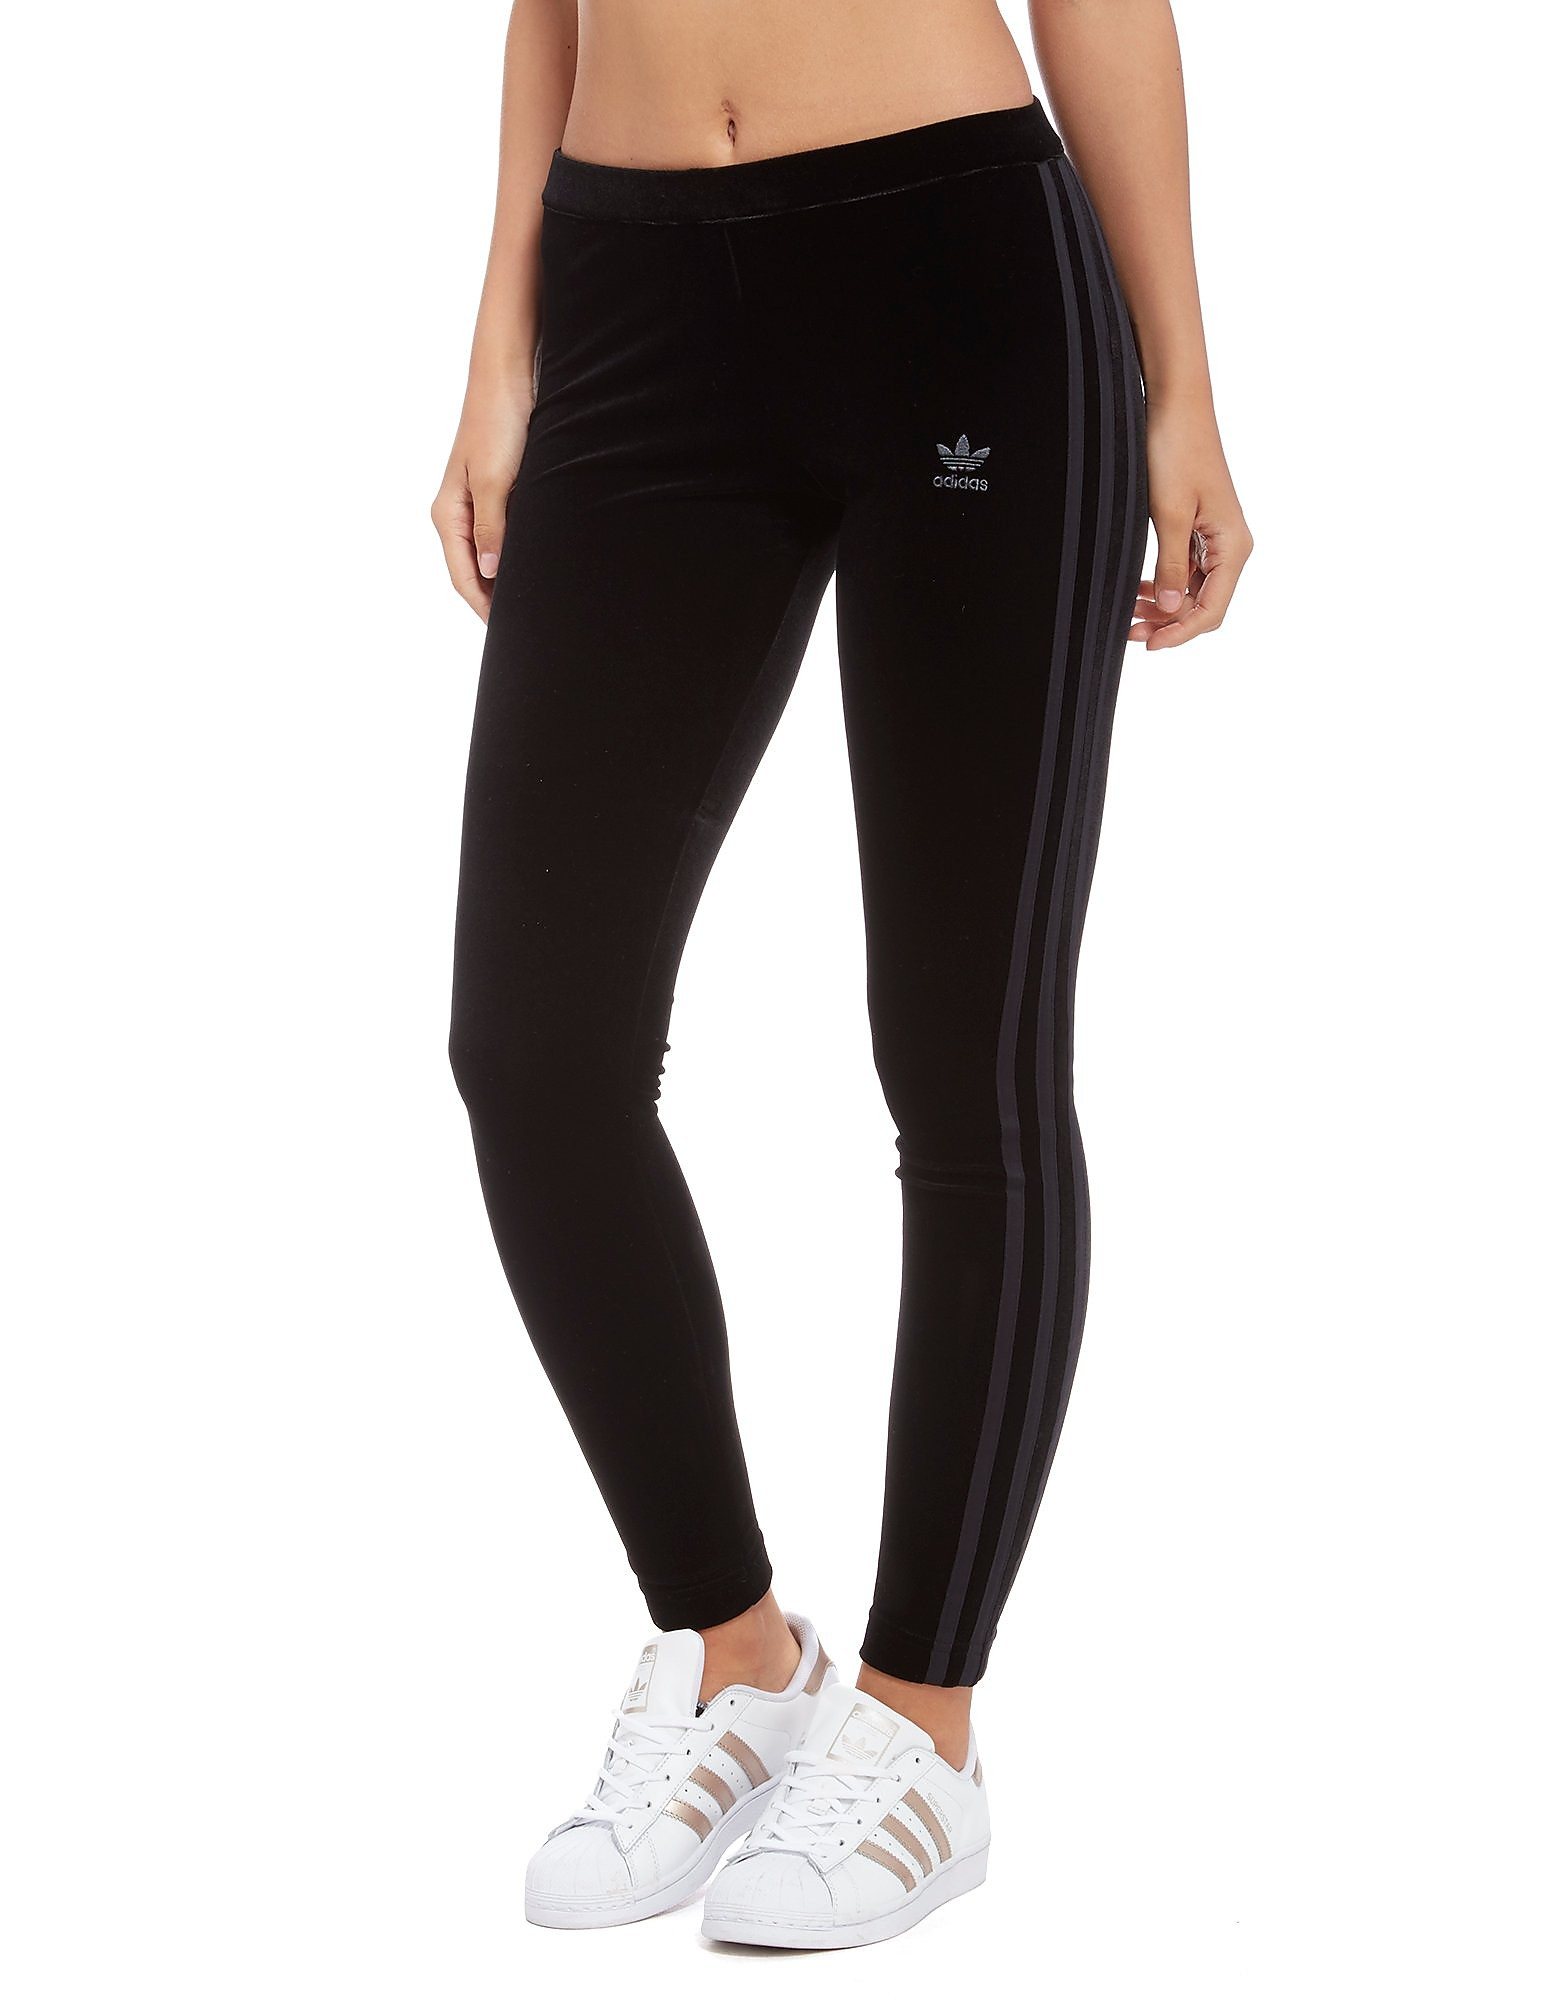 adidas Originals 3-Stripes Trefoil Velvet Leggings